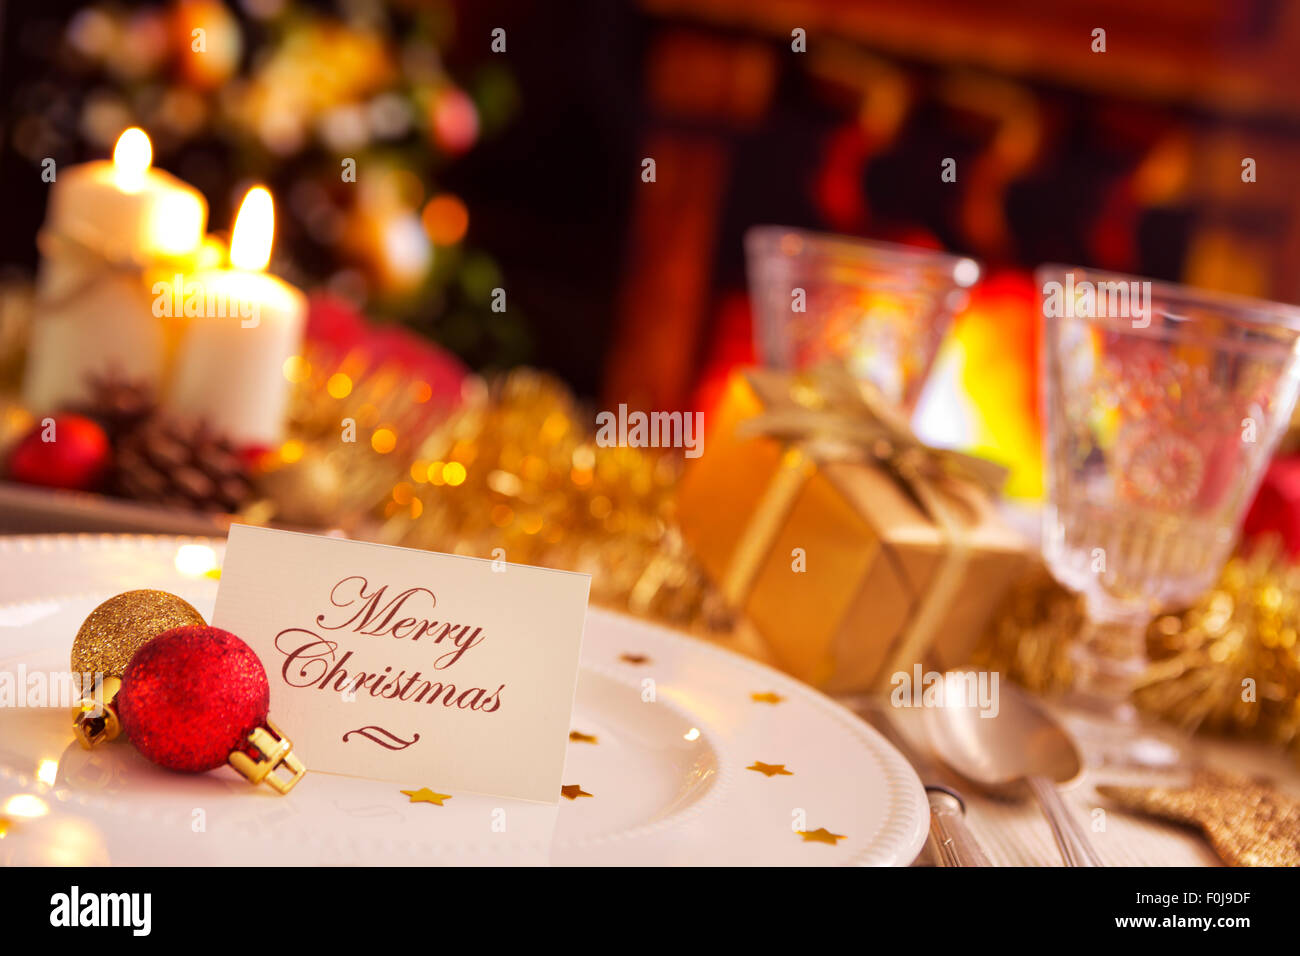 A romantic Christmas dinner table setting with candles and Christmas decorations. On the plate a note with the words \u0027Merry Chri & A romantic Christmas dinner table setting with candles and Christmas ...